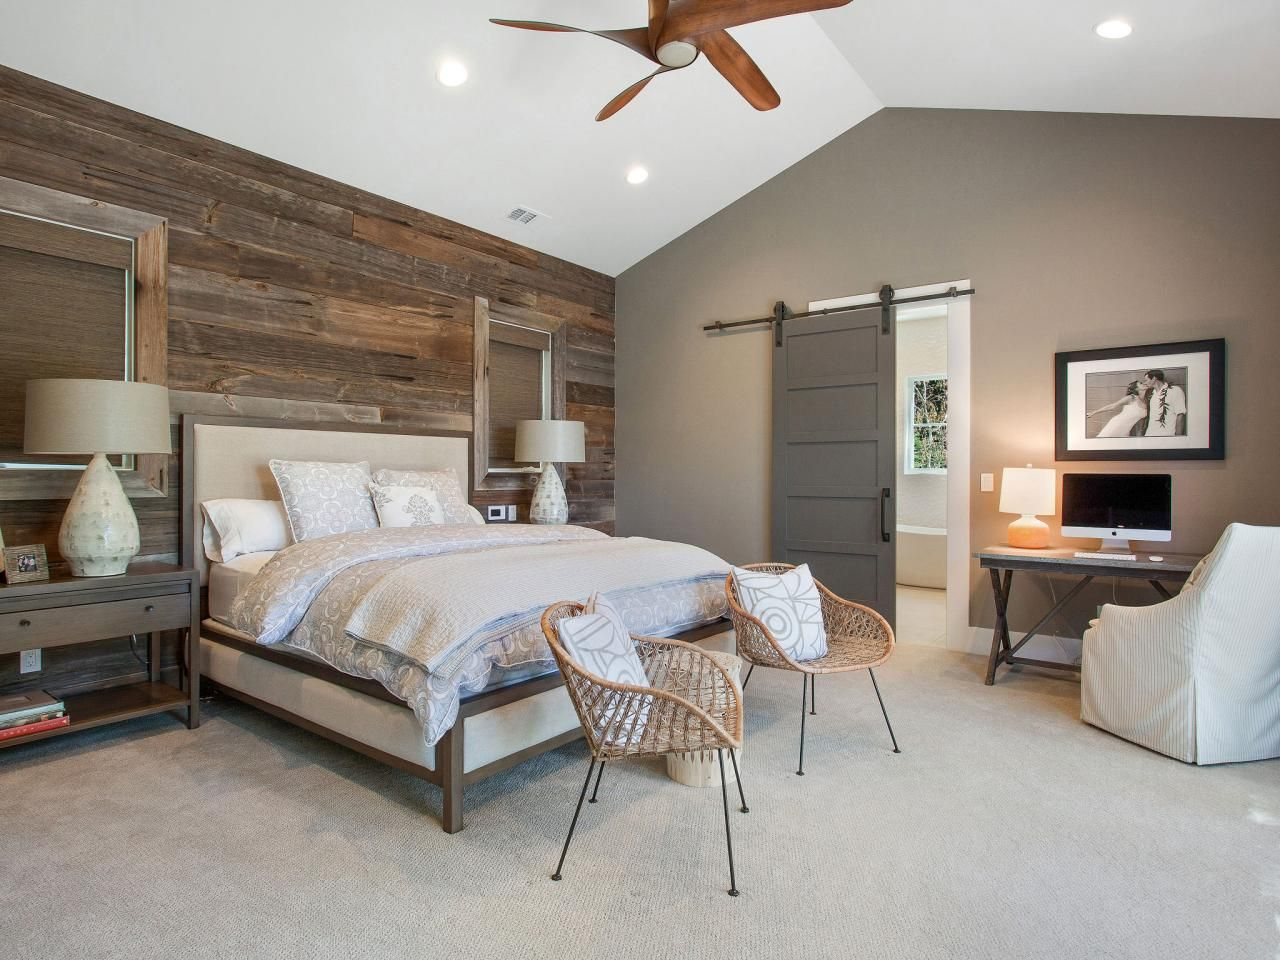 5 Ways to Bring Coastal Style to Your Home Year-Round | Web series Contemporary Rustic Bedroom Decorating Ideas Hgtv on fall mantel decorating ideas, rustic cabin bathroom decor ideas, hgtv paint colors ideas, hgtv rustic decor, hgtv crafts ideas, spanish style decorating ideas,